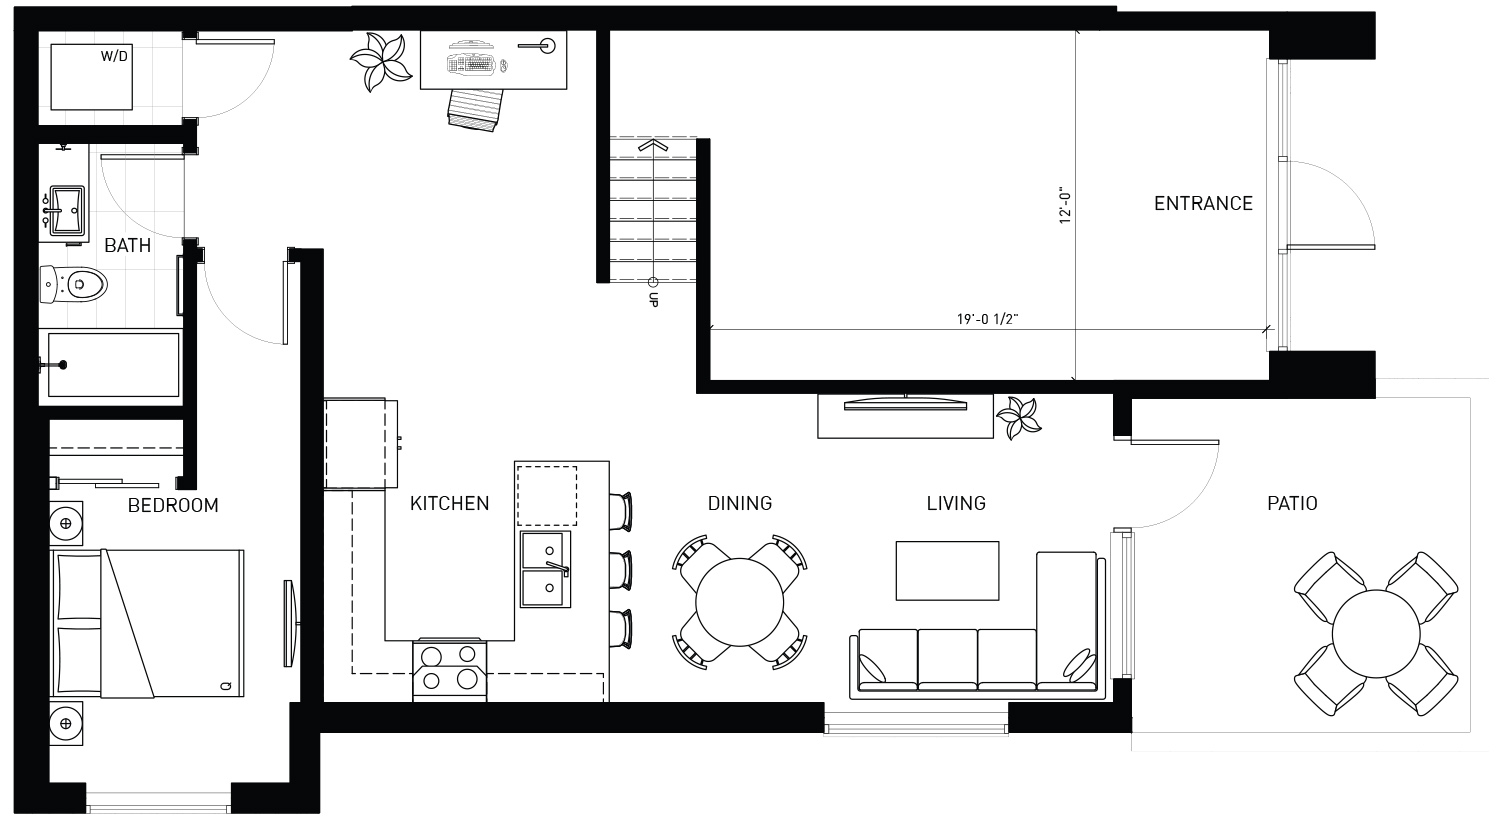 Plan 1 Floorplan